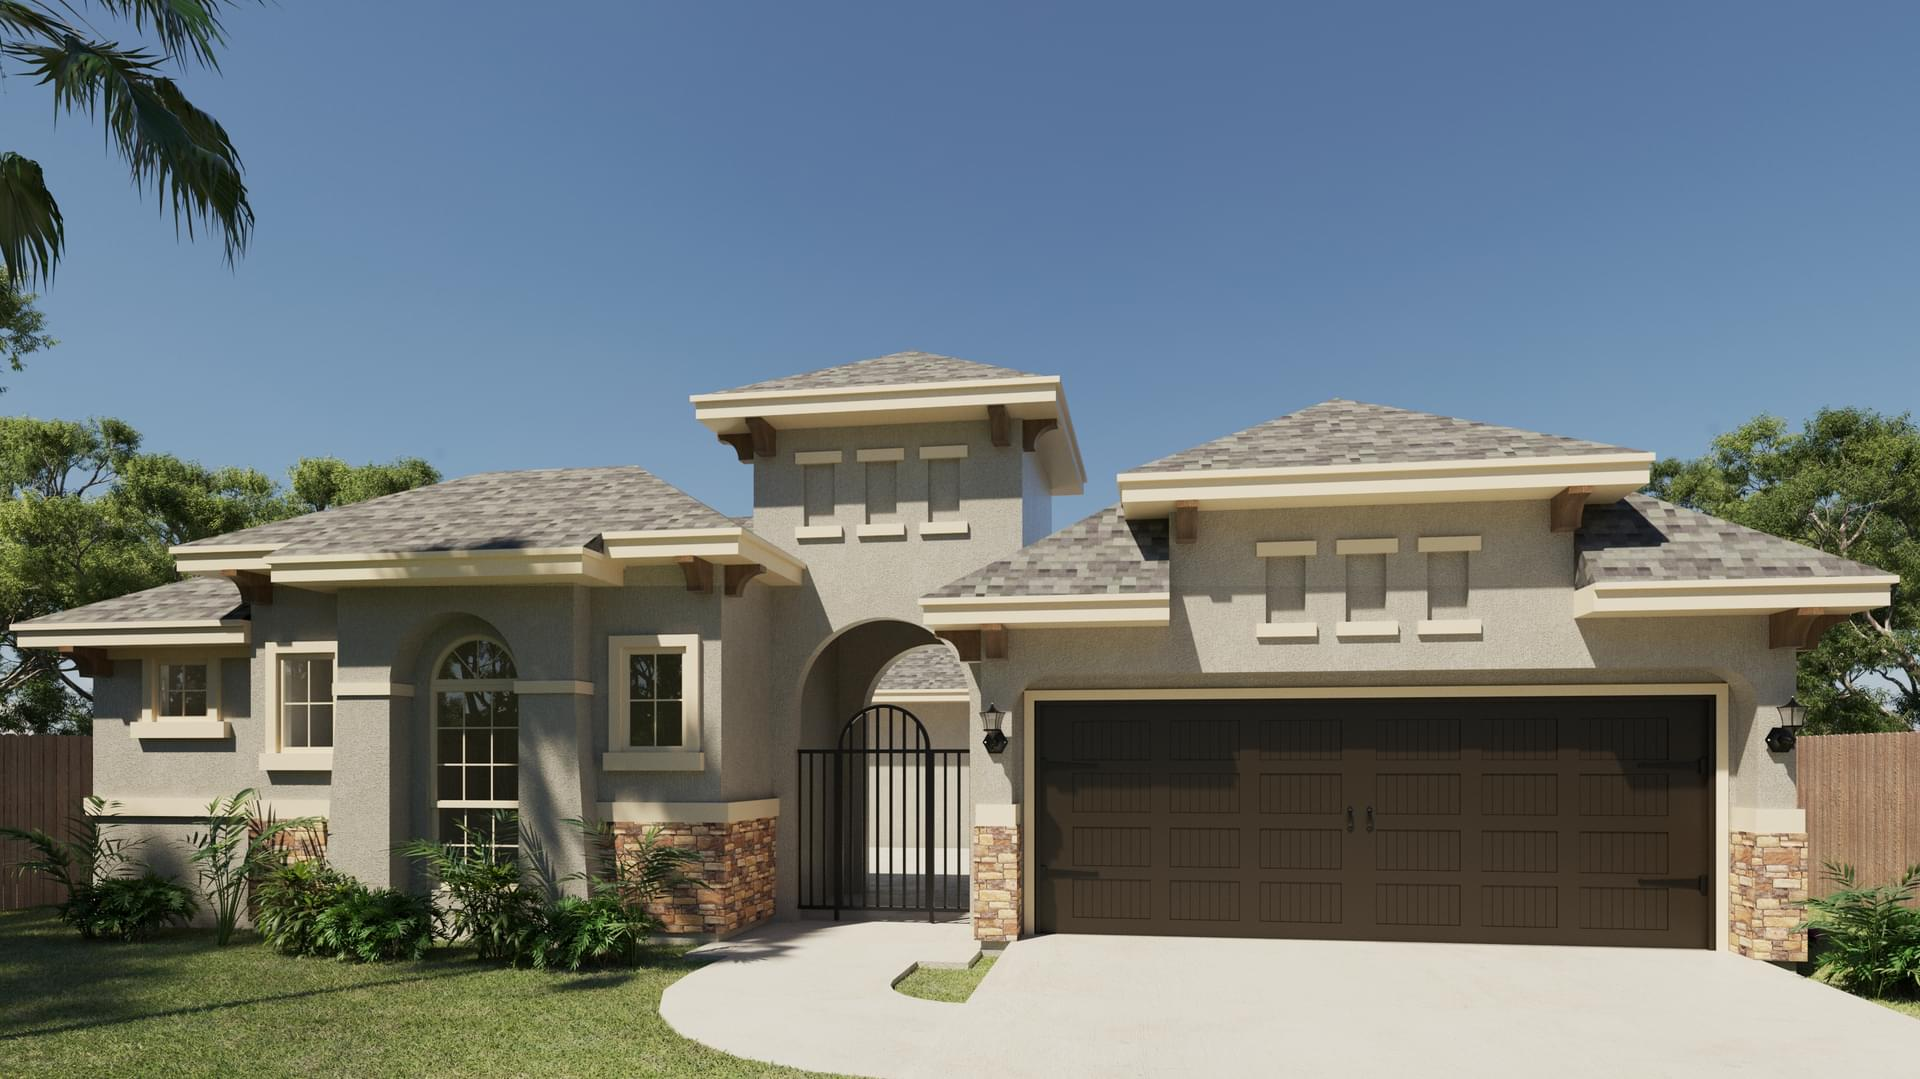 The San Juan new home in McAllen , TX